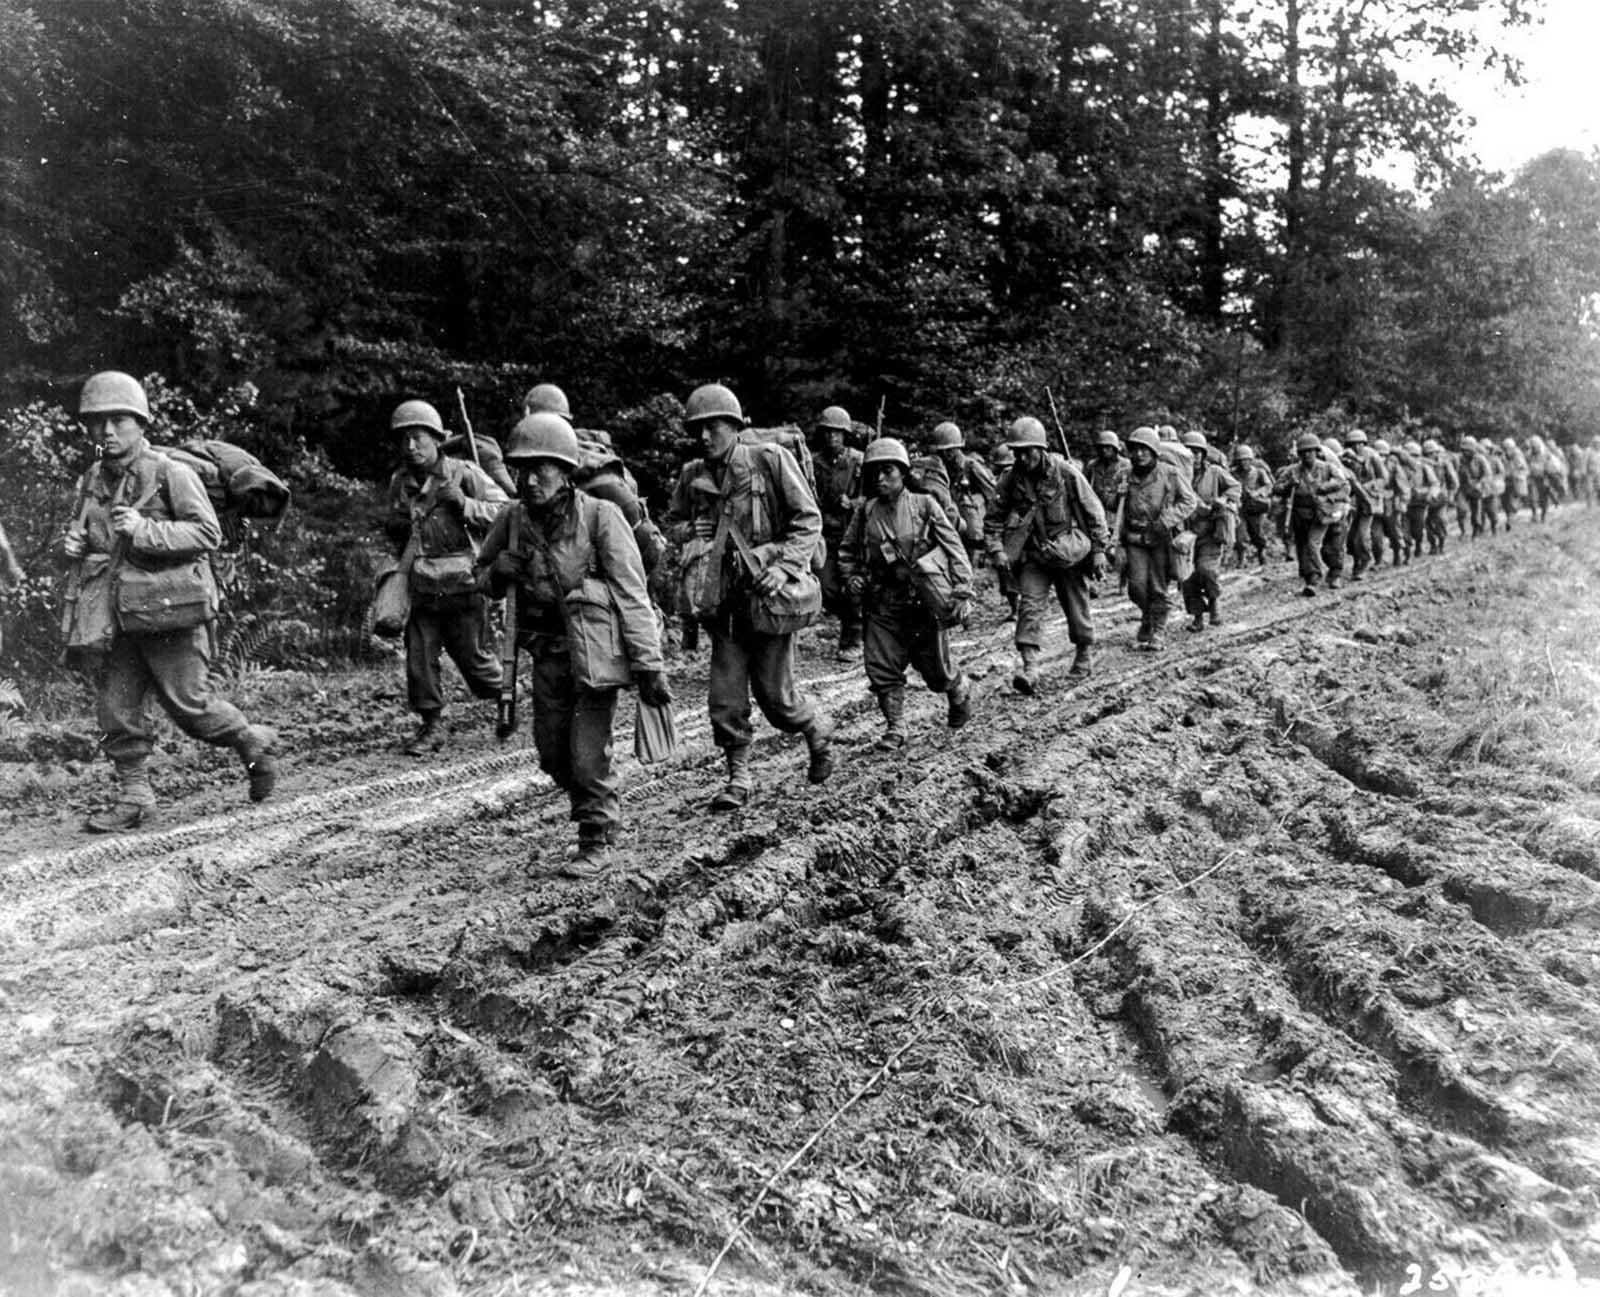 Members of the 442nd on the march in the Chambois Sector, France. 1944.